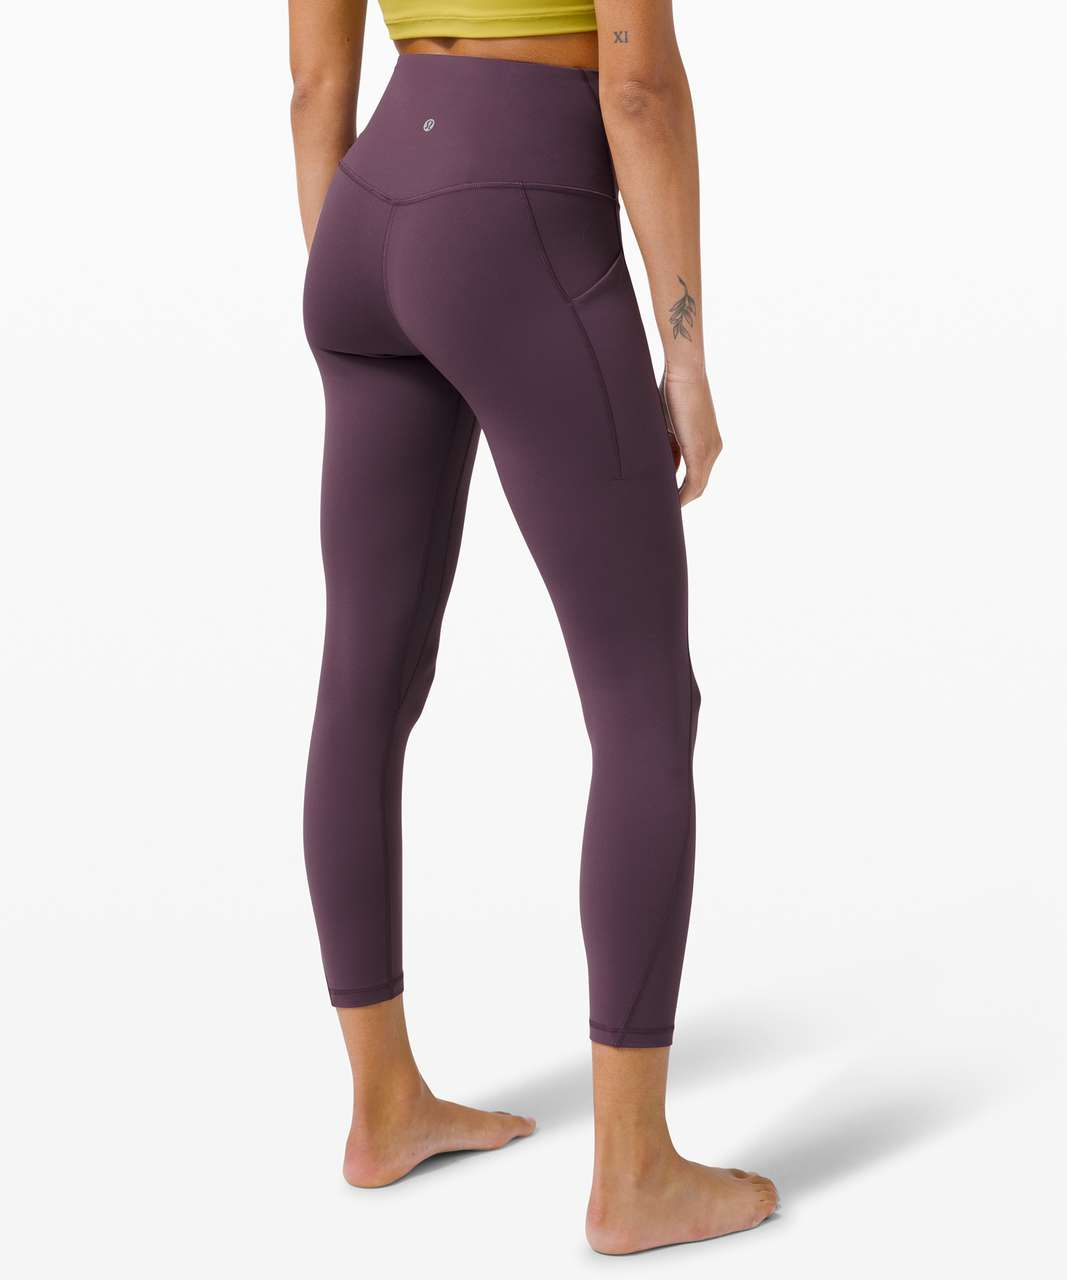 """Lululemon Align High Rise Pant with Pockets 25"""" - Grape Thistle"""